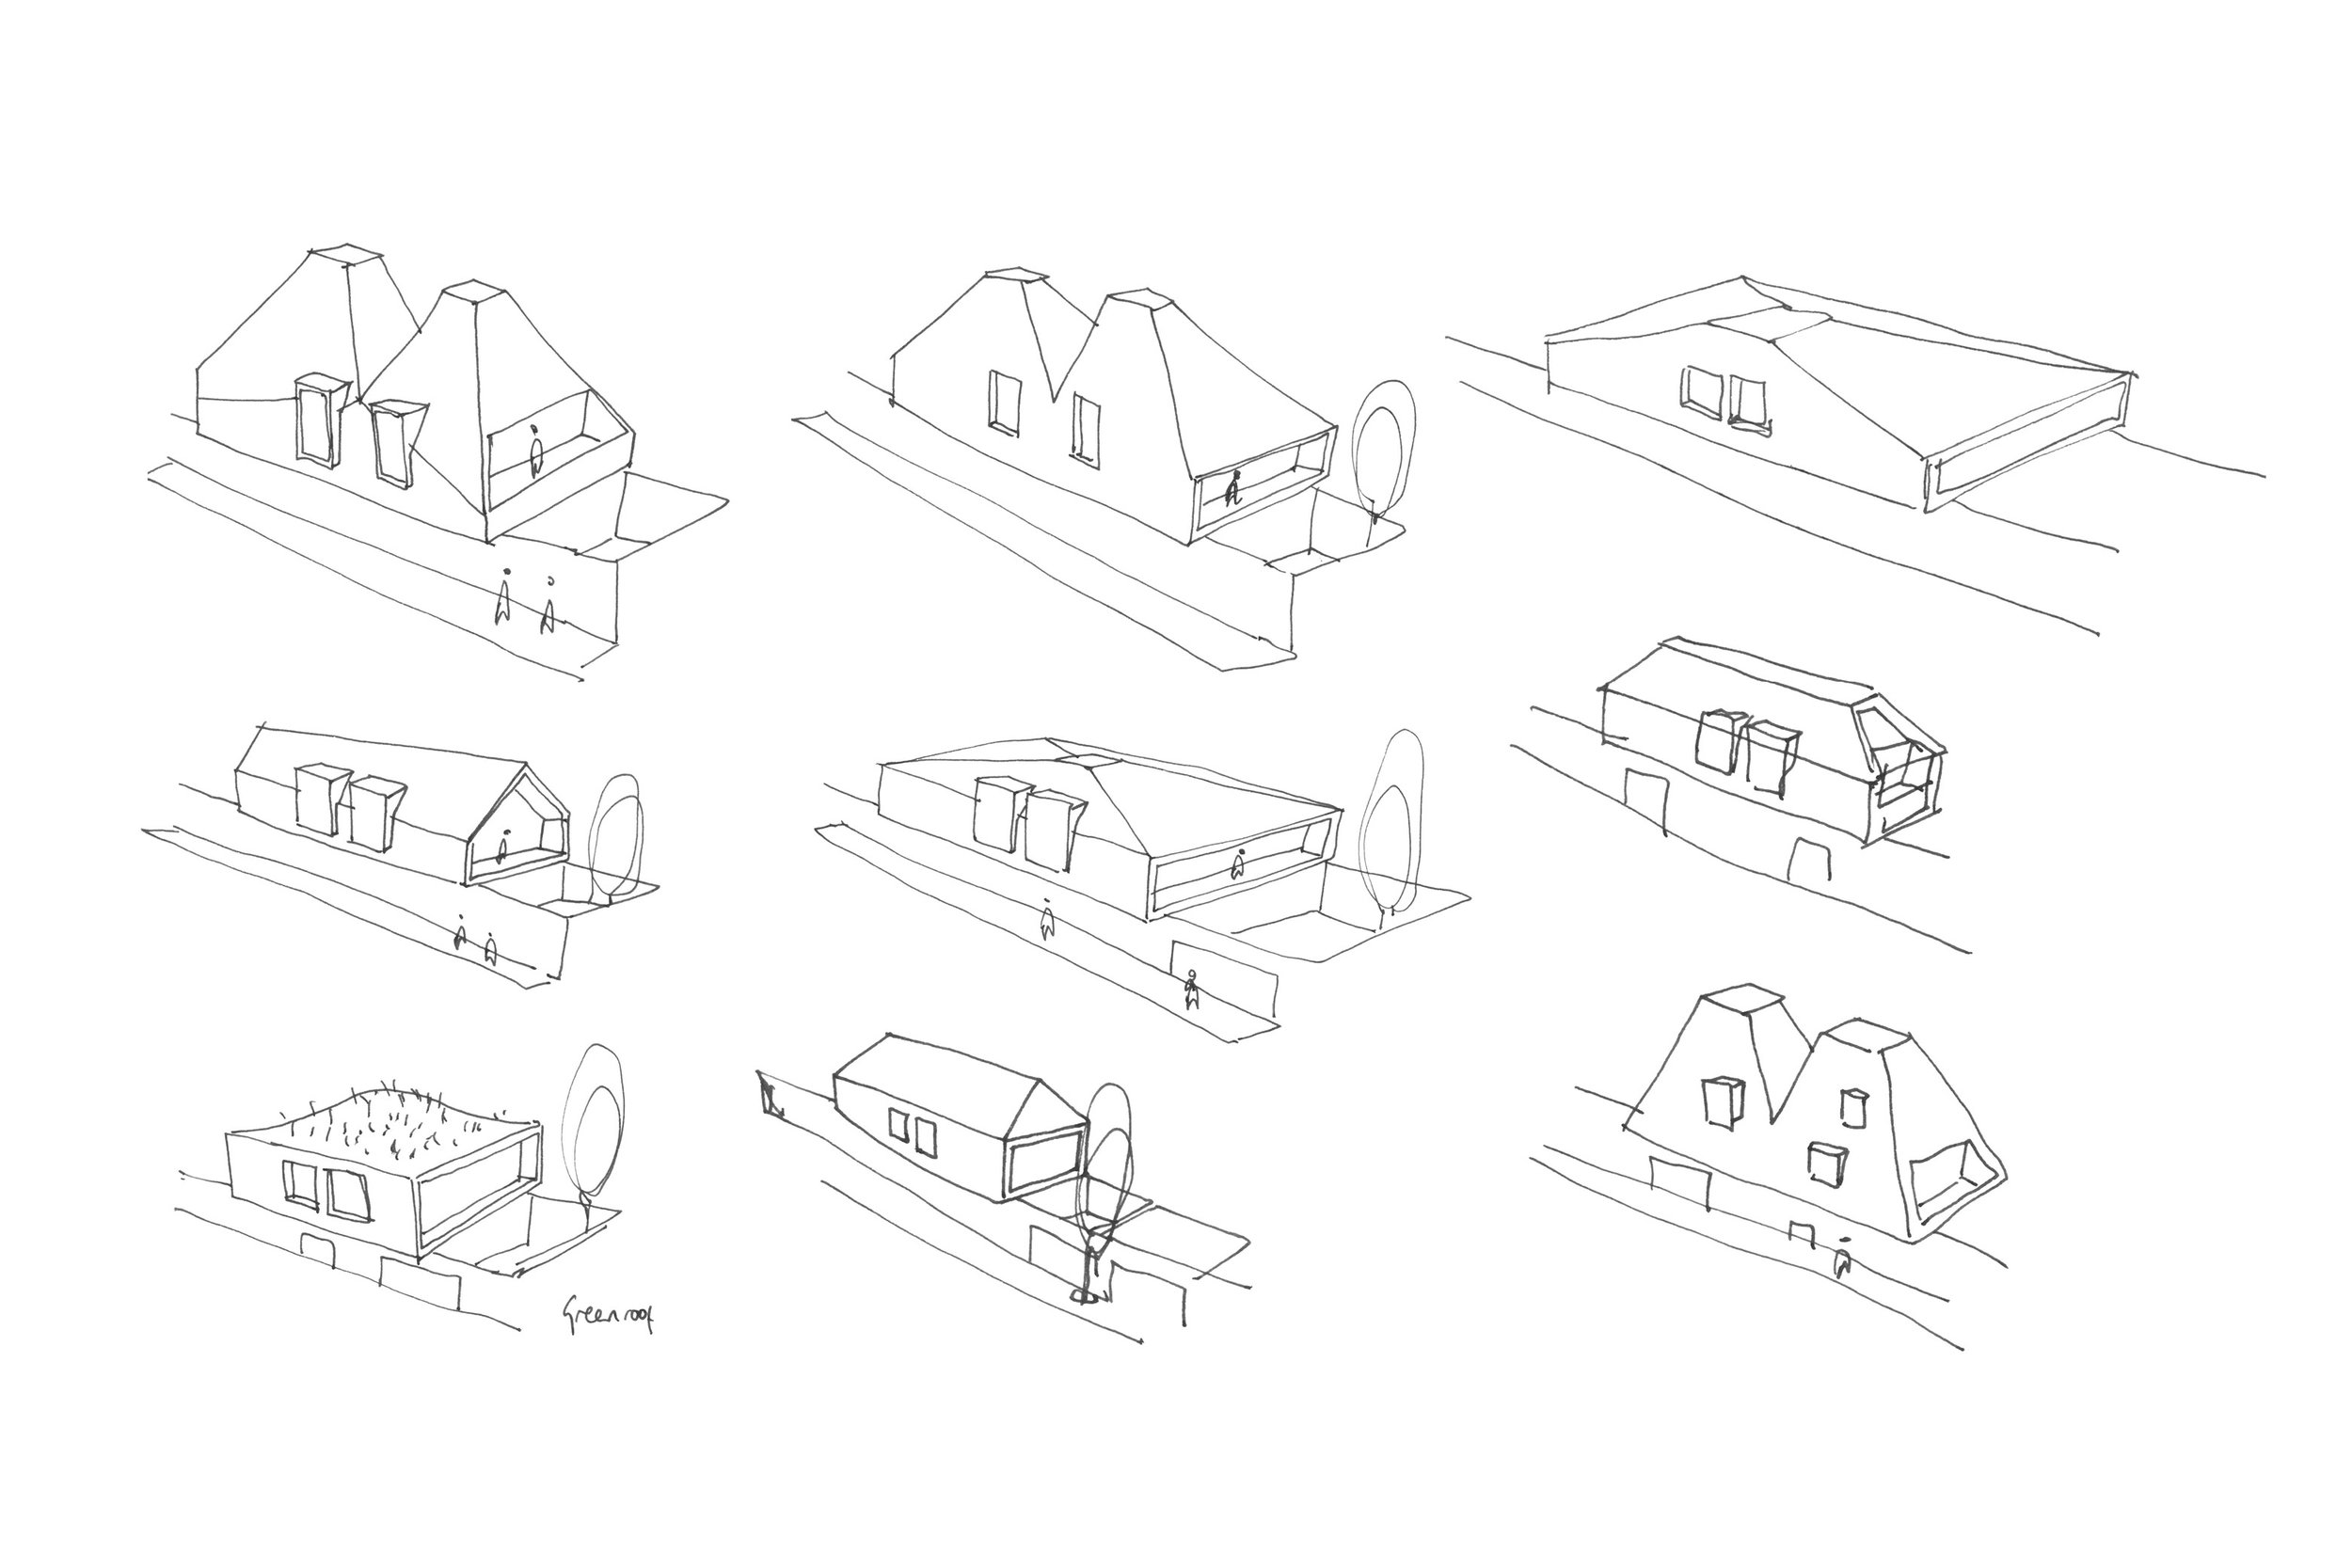 Concept Sketches for House Types of Social Housing Development in Hackney